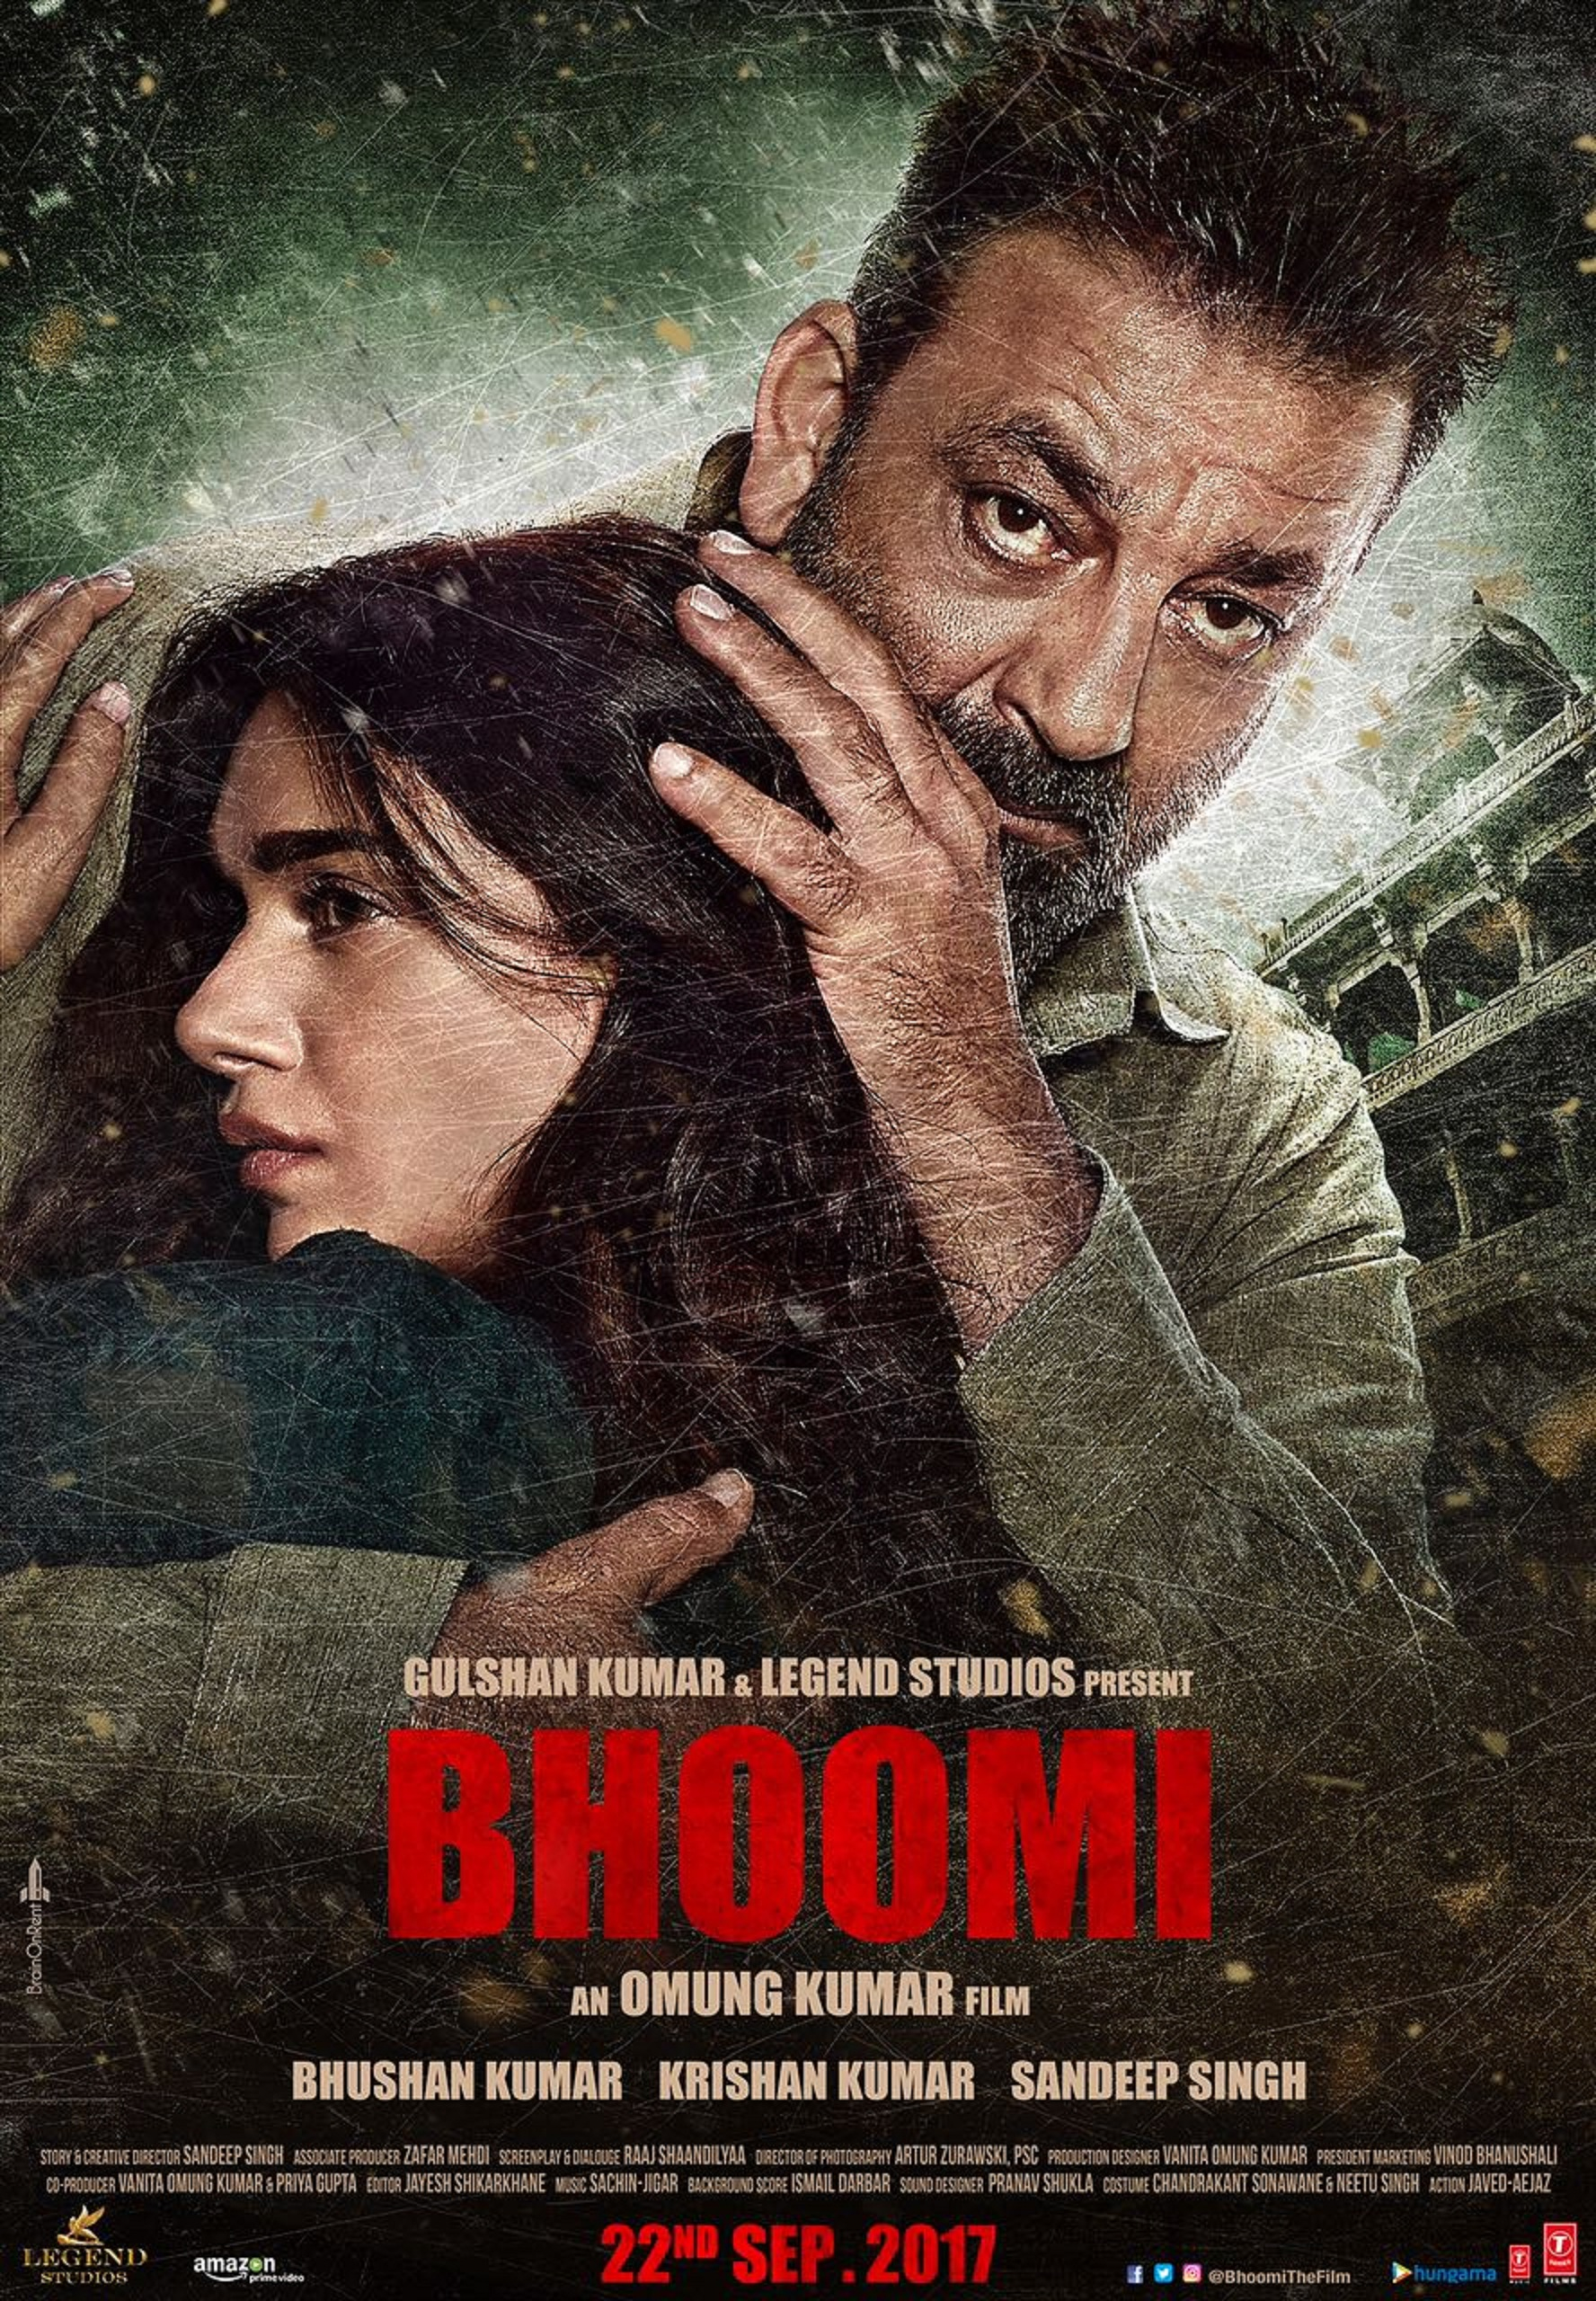 Bhoomi Box Office Collection Till Now Box Collection Bollywood Hungama